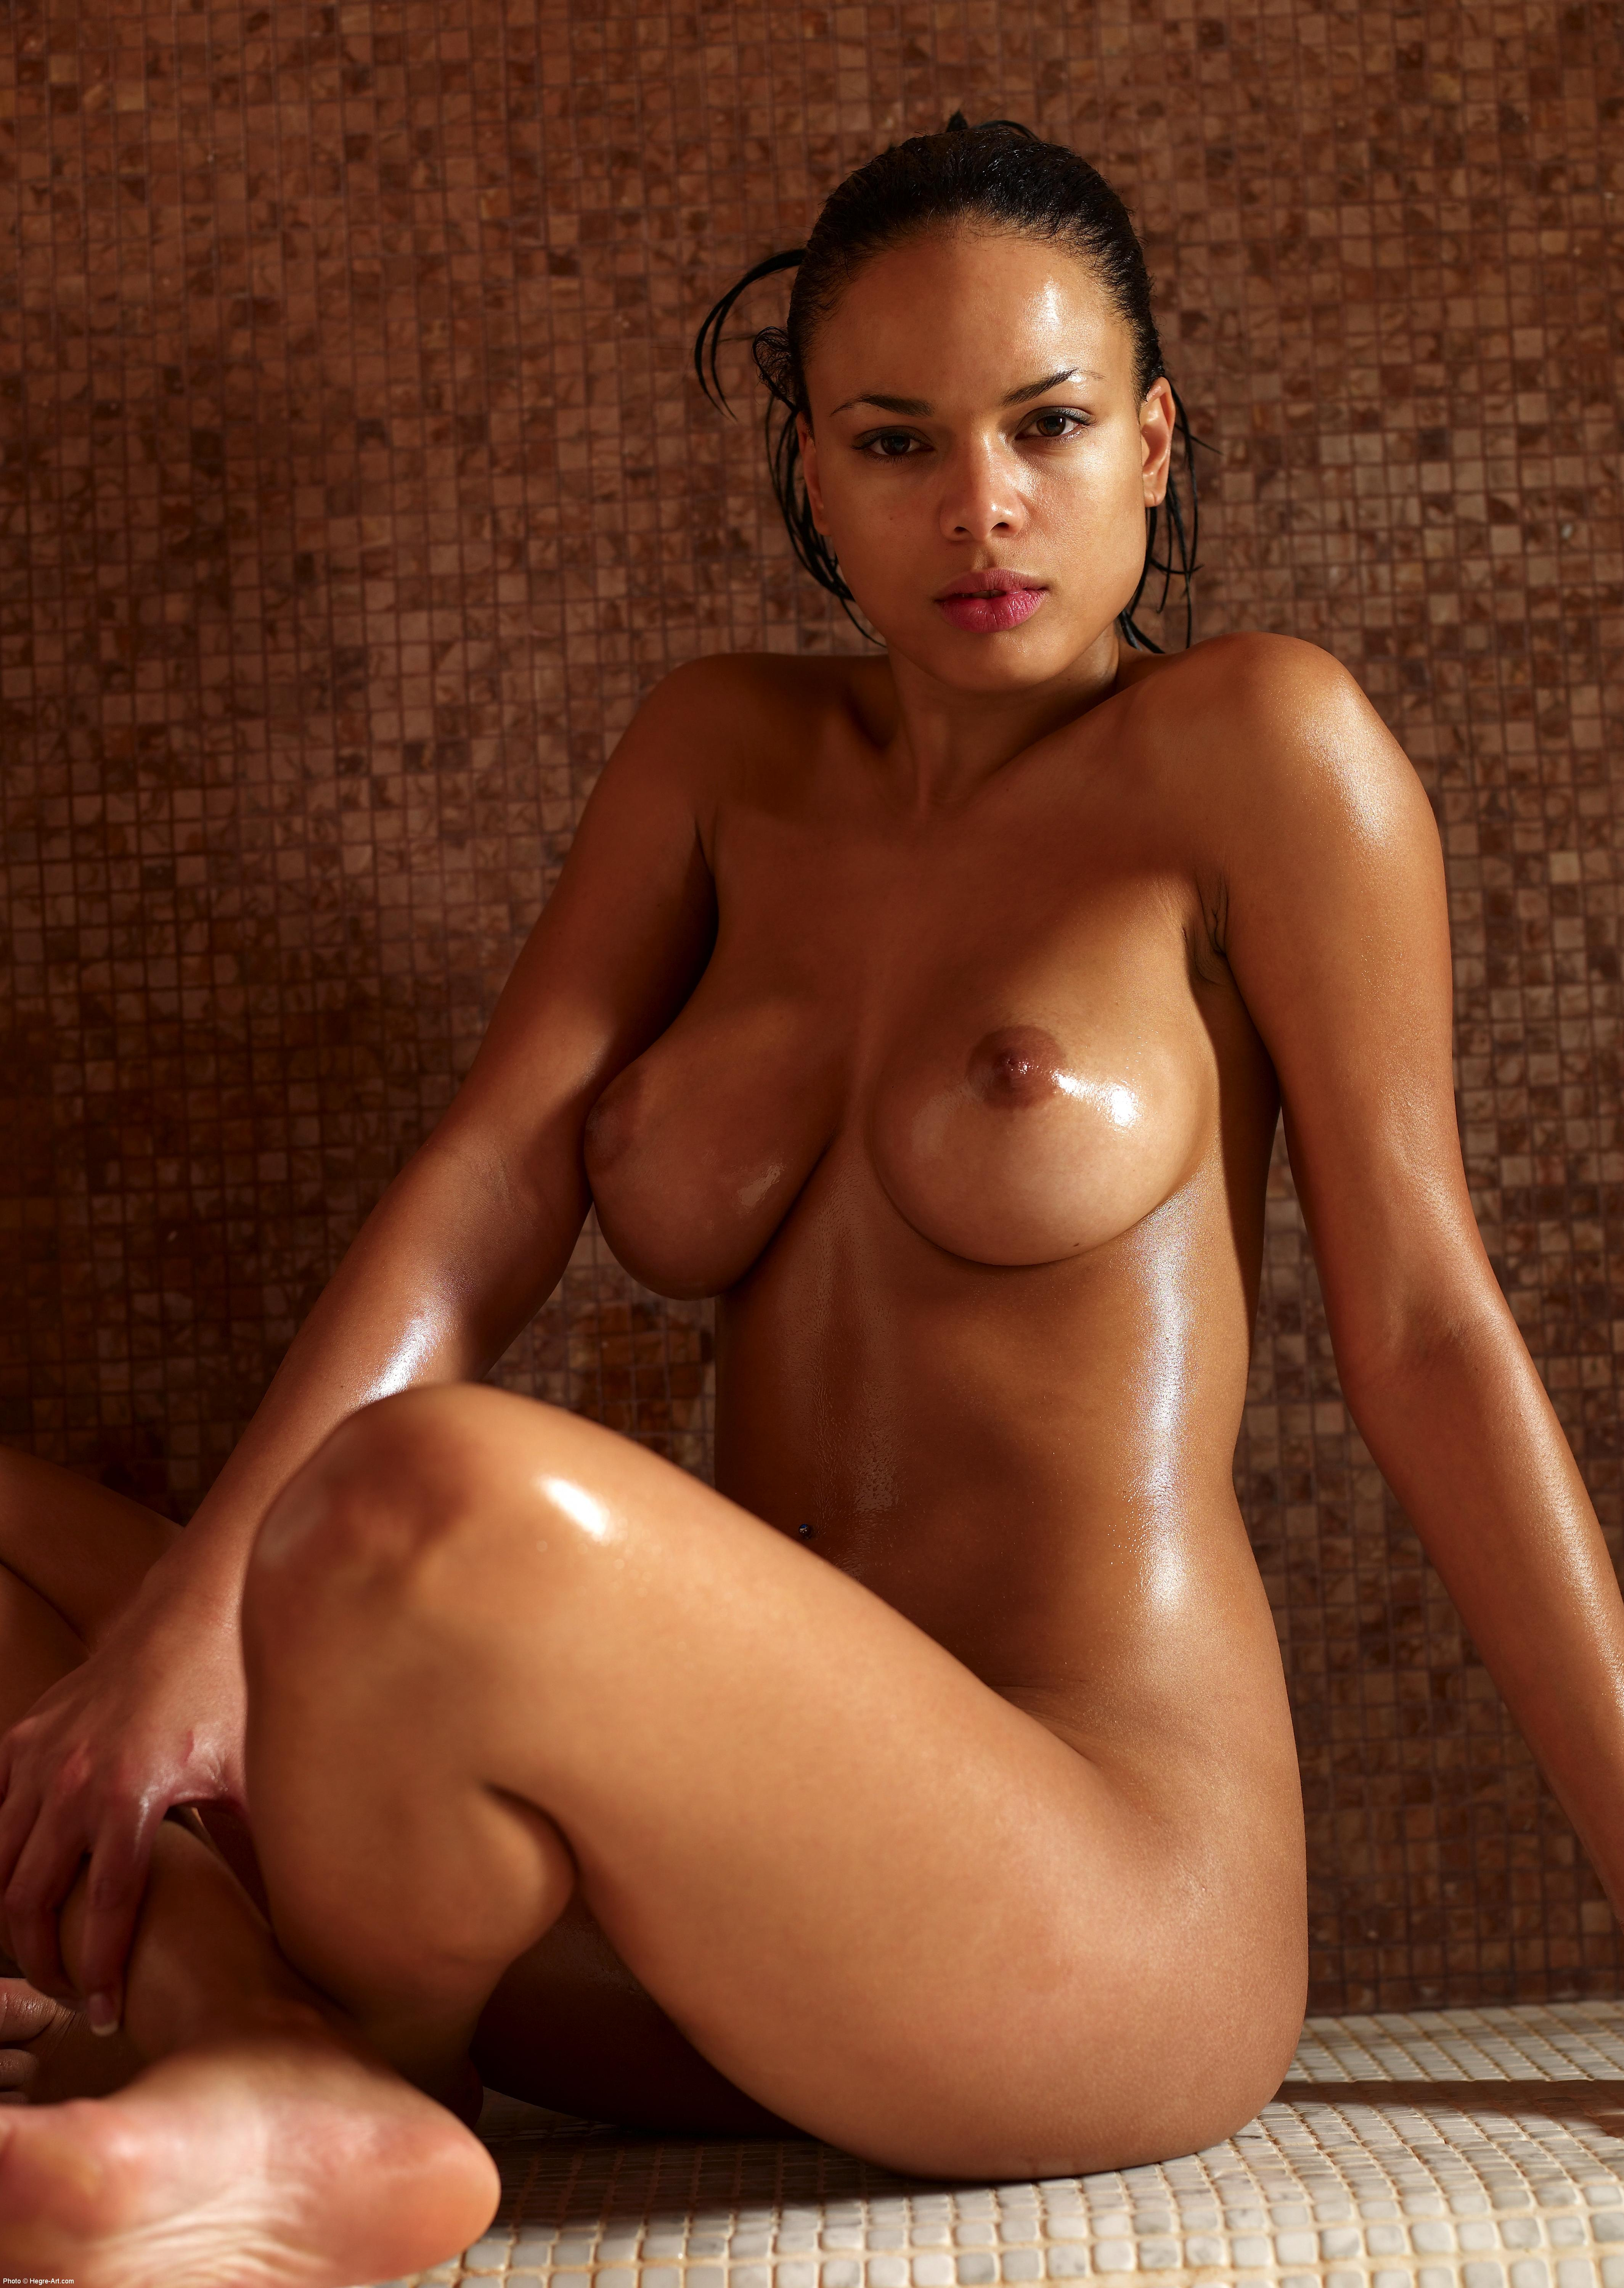 Hot nude chilean girl